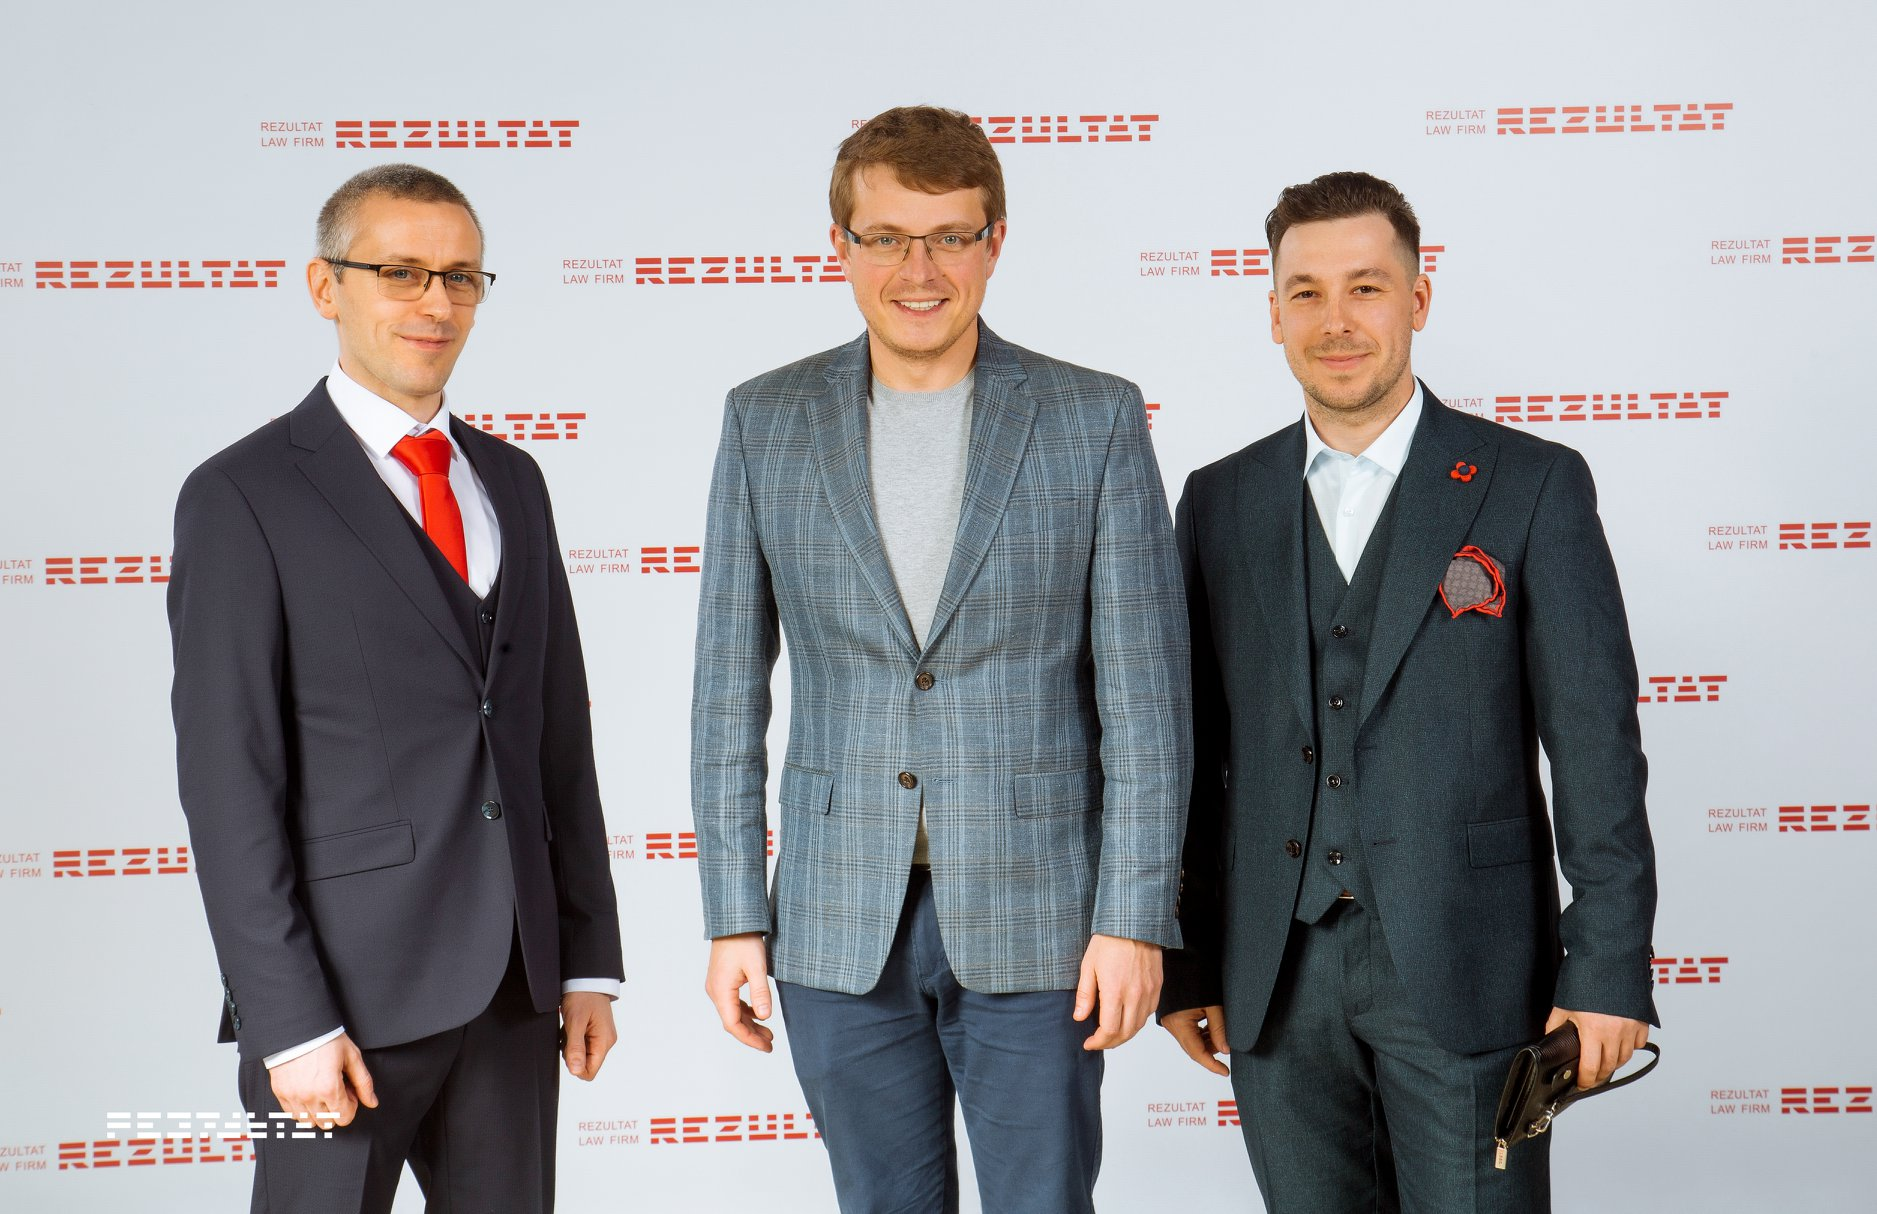 Vladyslav Golub rezultat law firm